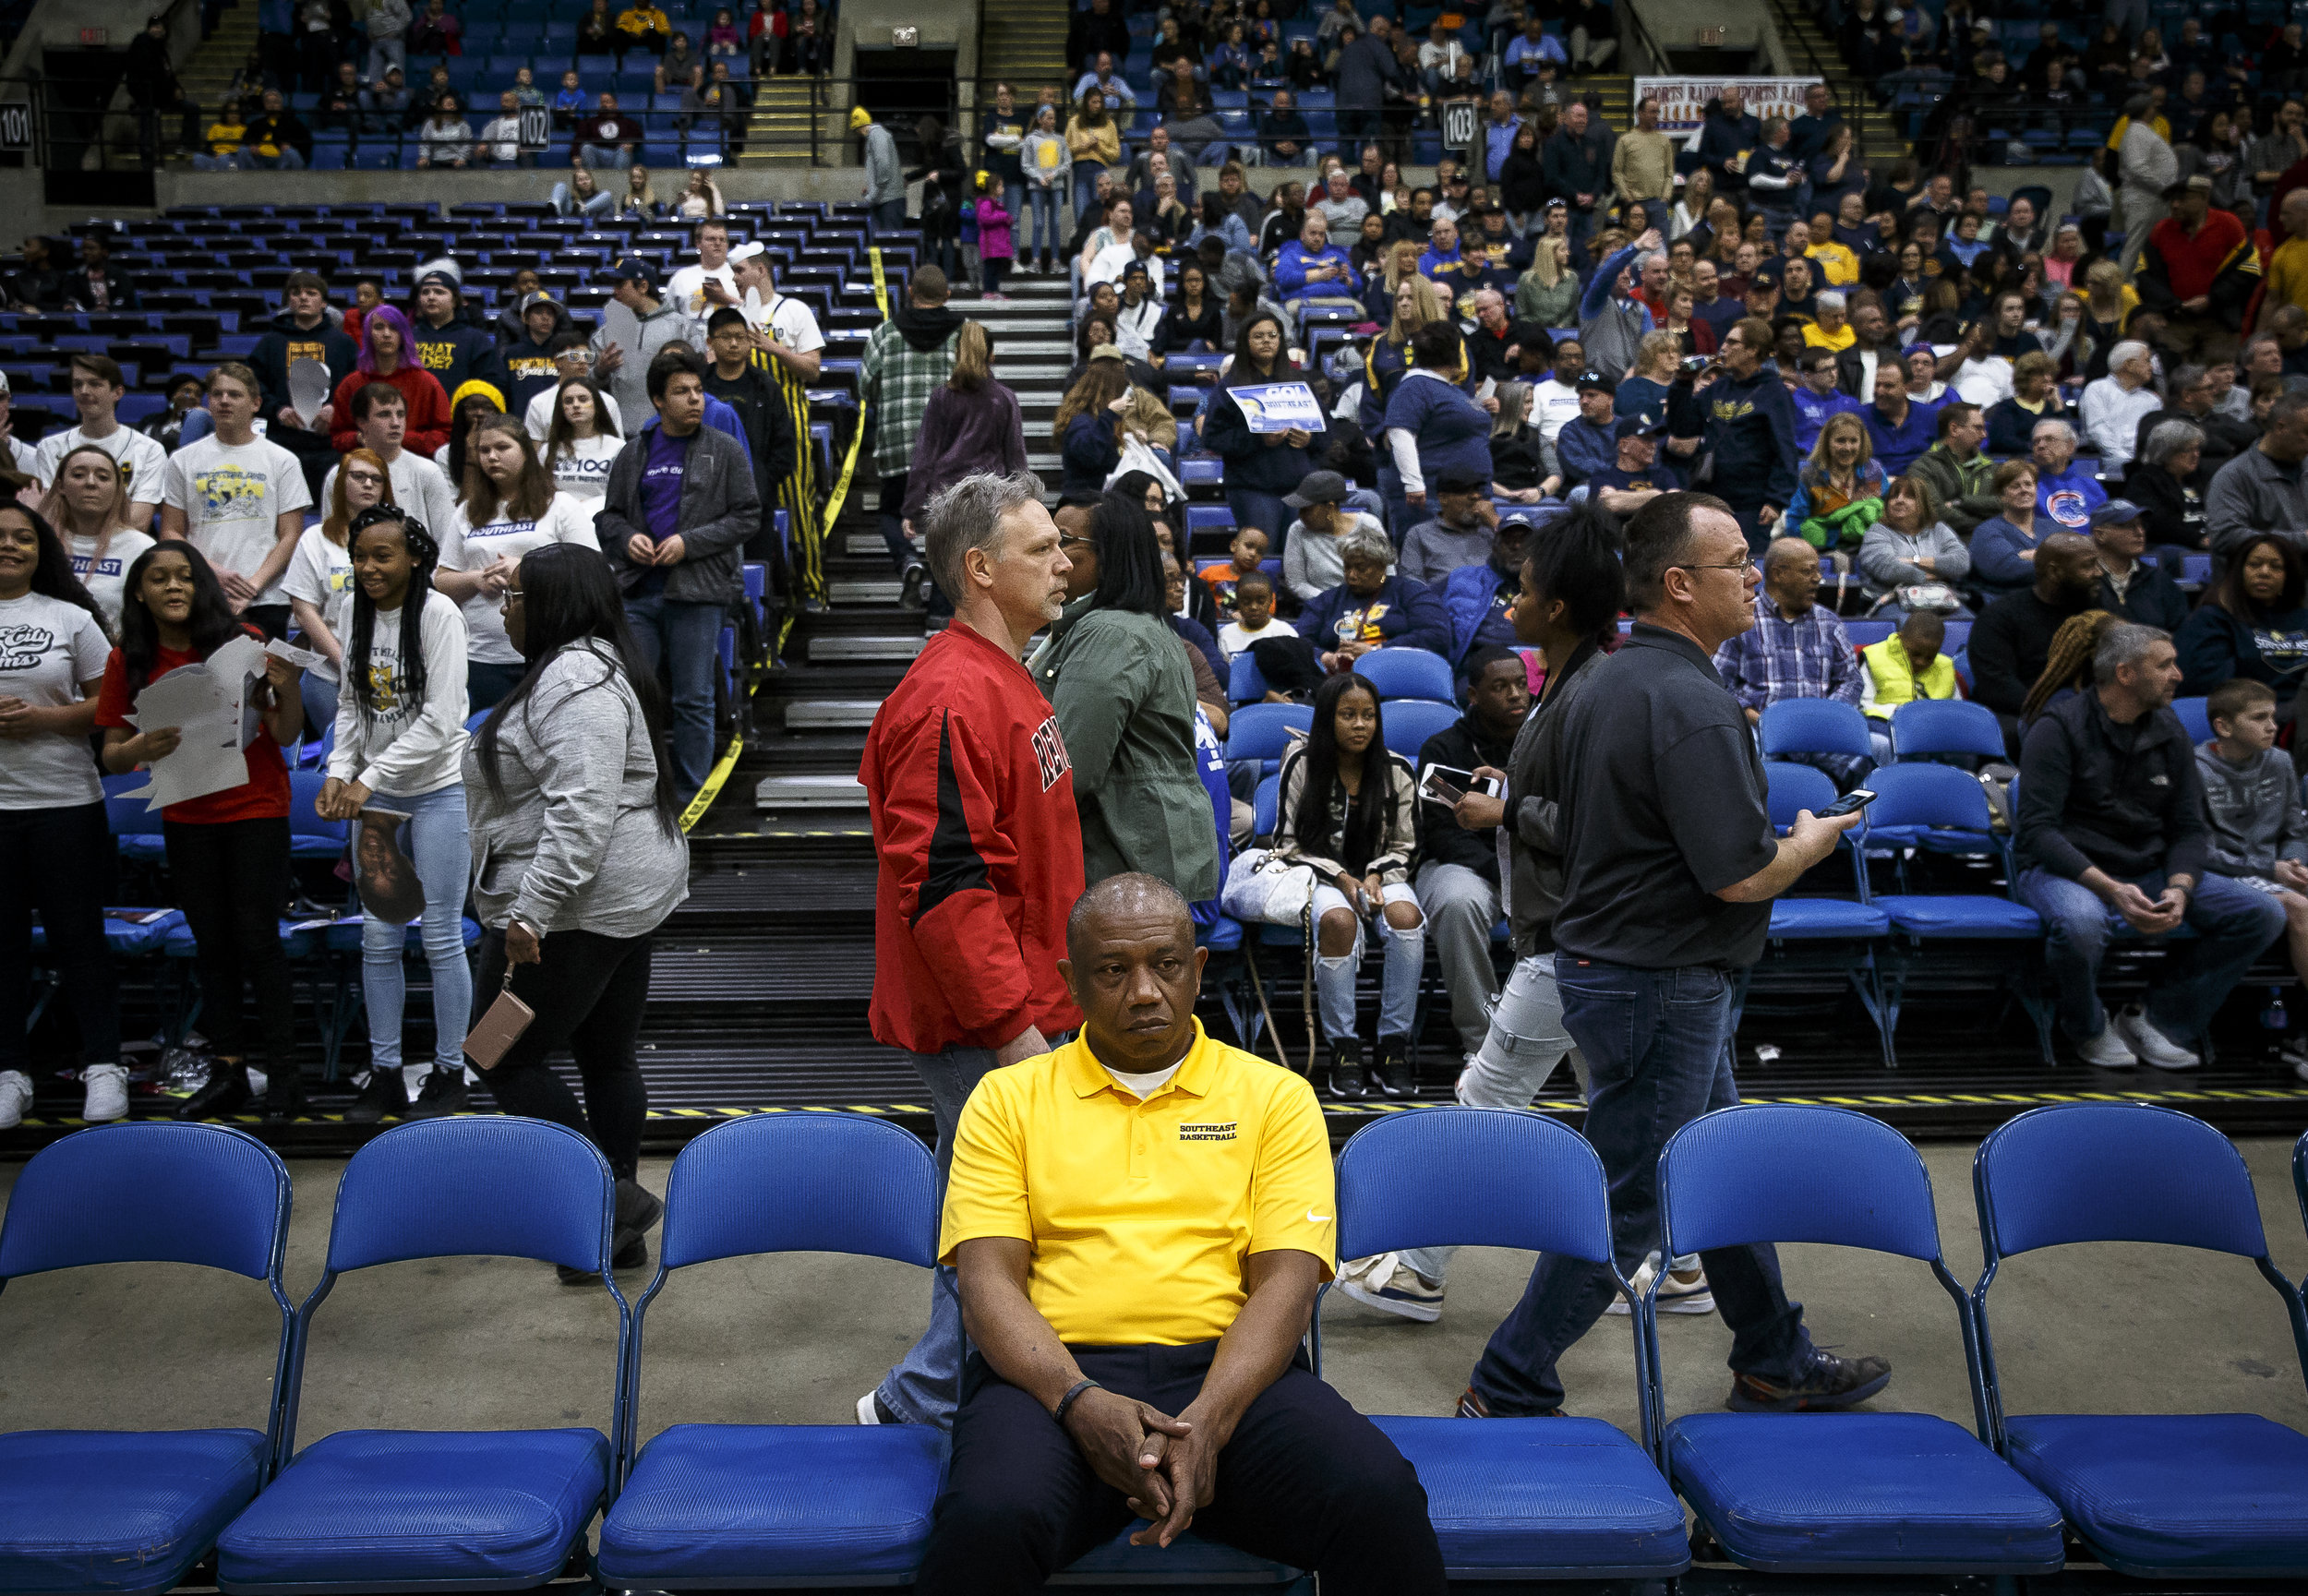 Southeast boys basketball head coach Lawrence Thomas watches from the bench as the Spartans get set to take on Marion in the Class 3A Springfield Supersectional at the Bank of Springfield Center, Tuesday, March 13, 2018, in Springfield, Ill. [Justin L. Fowler/The State Journal-Register]